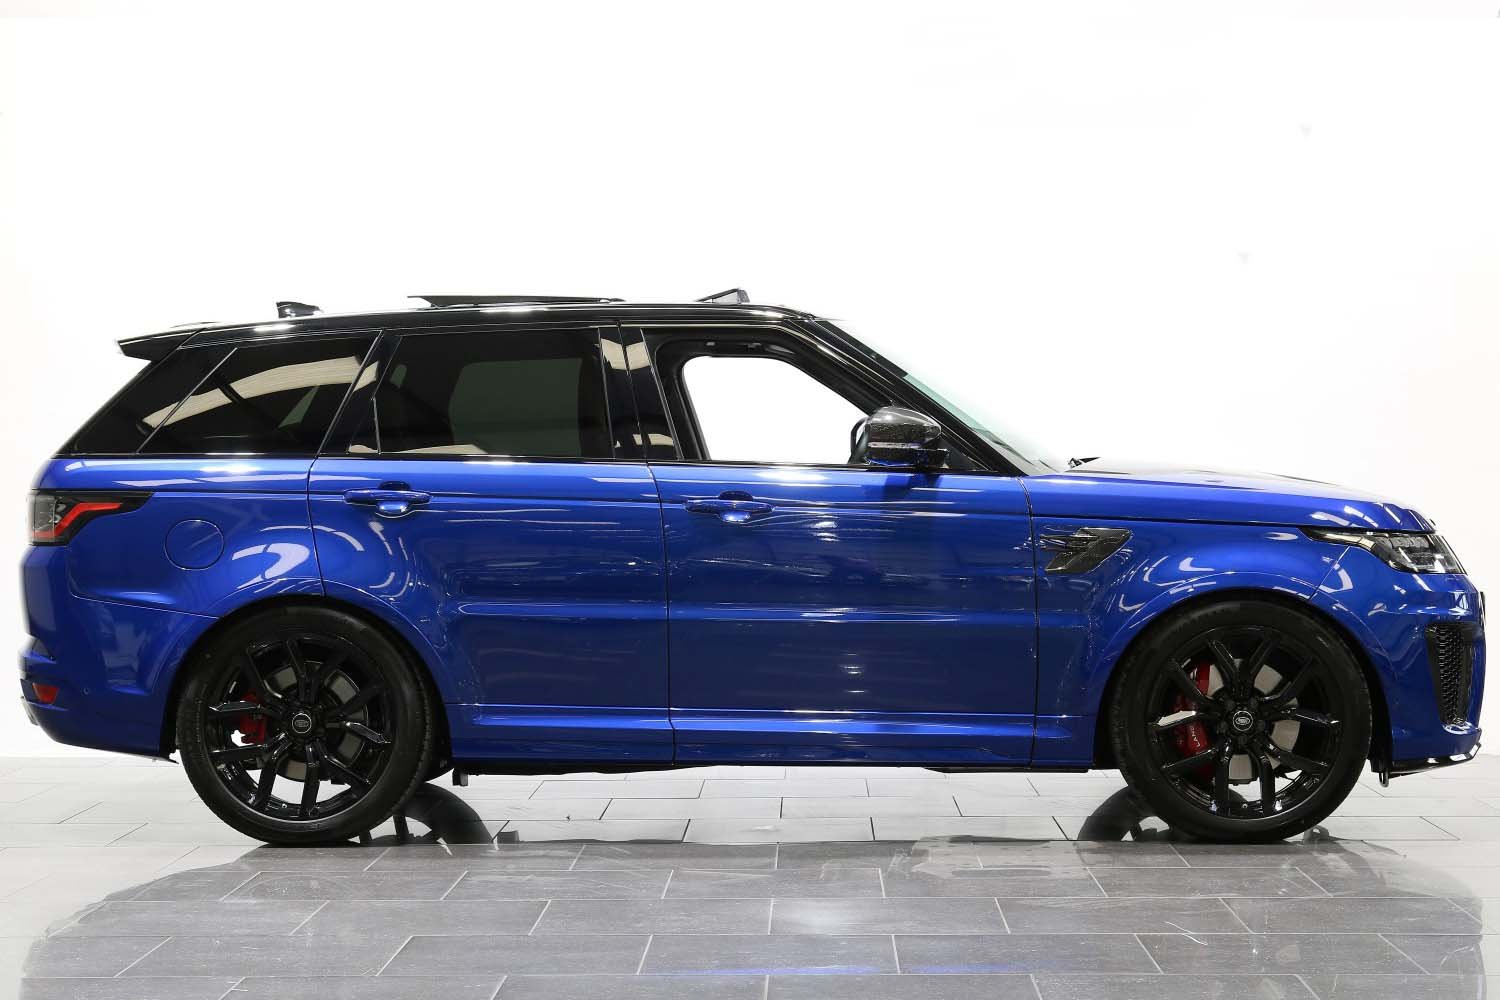 2018 18 68 RANGE ROVER 5.0 V8 SUPERCHARGED SVR AUTO For Sale (picture 2 of 6)